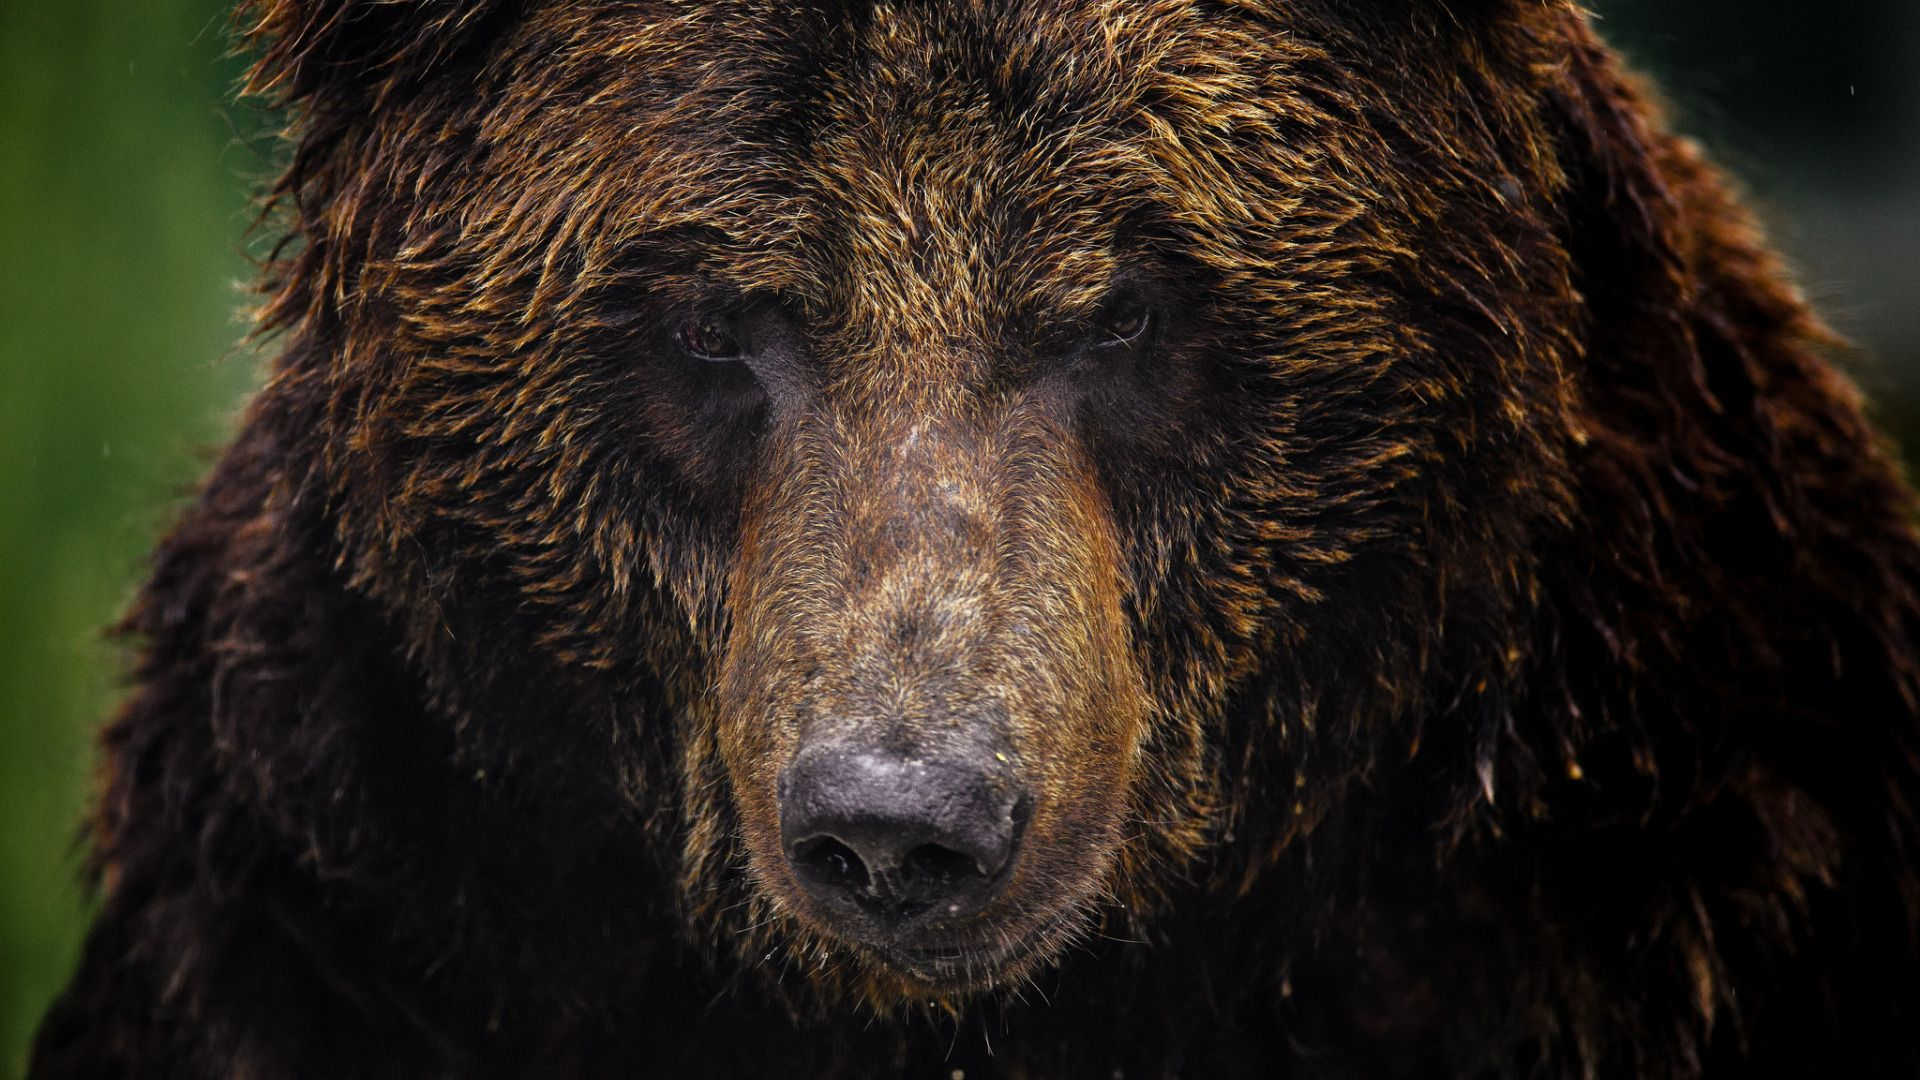 Download Wallpaper Face, Background, Bear, Grizzly, Animals Section In The Permit